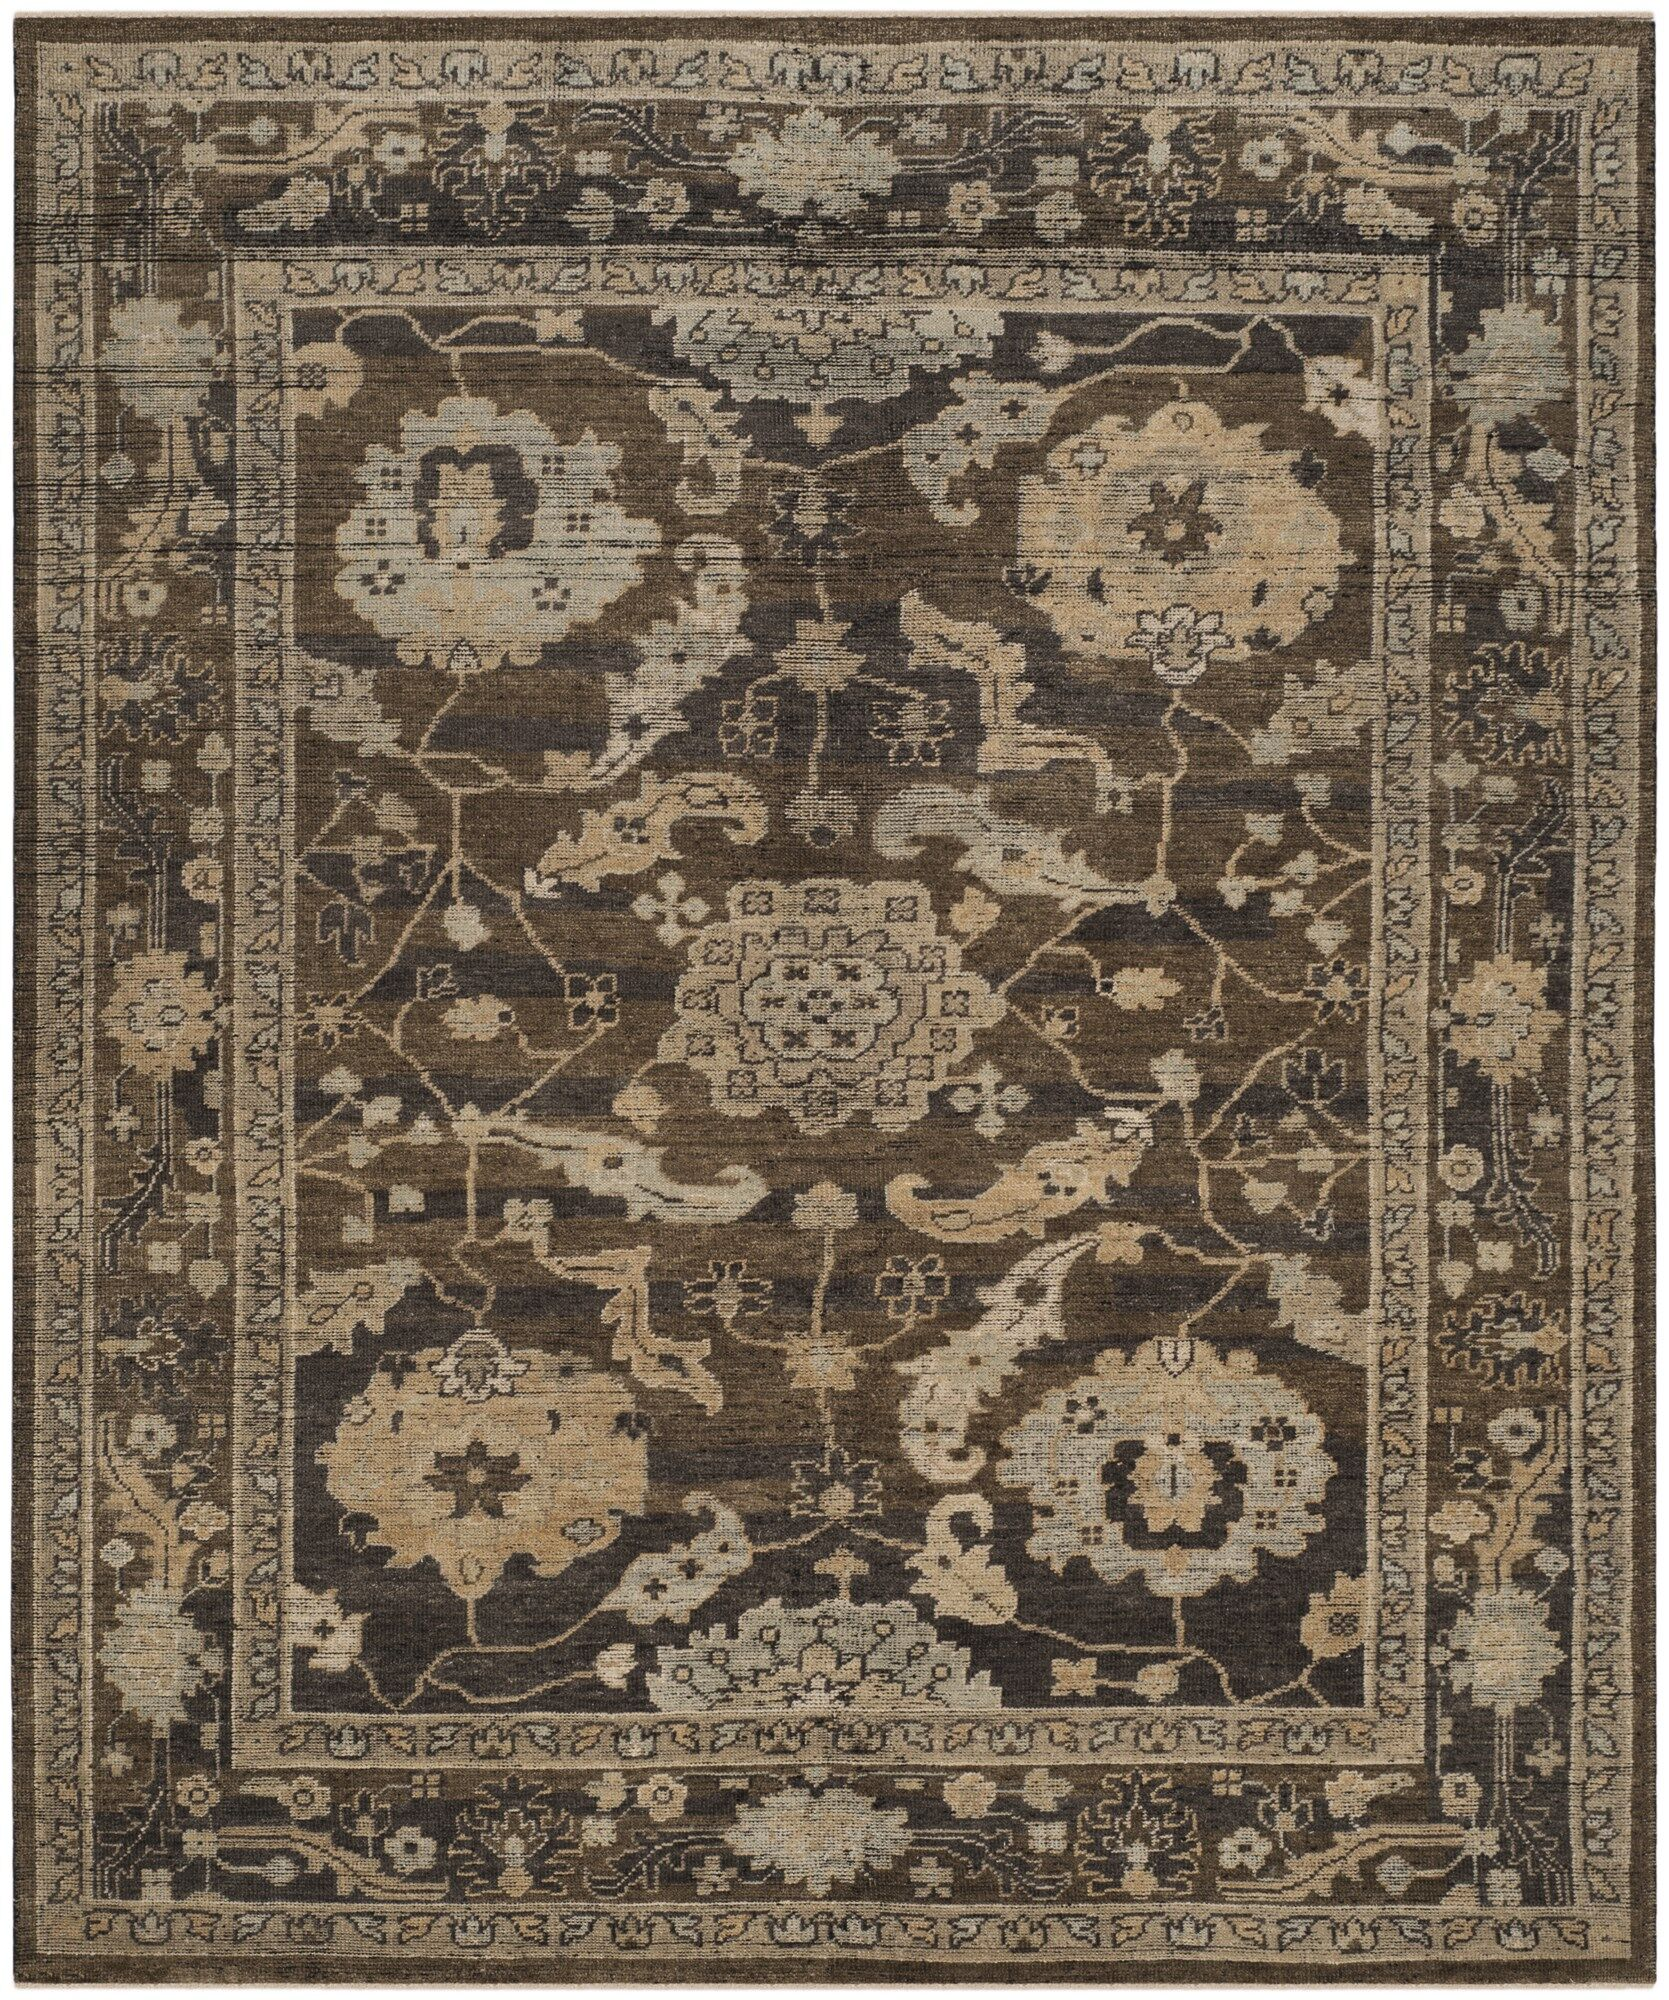 Kline Hand-Knotted Wool Charcoal Indoor/Outdoor Area Rug Rug Size: Rectangle 9' X 12'